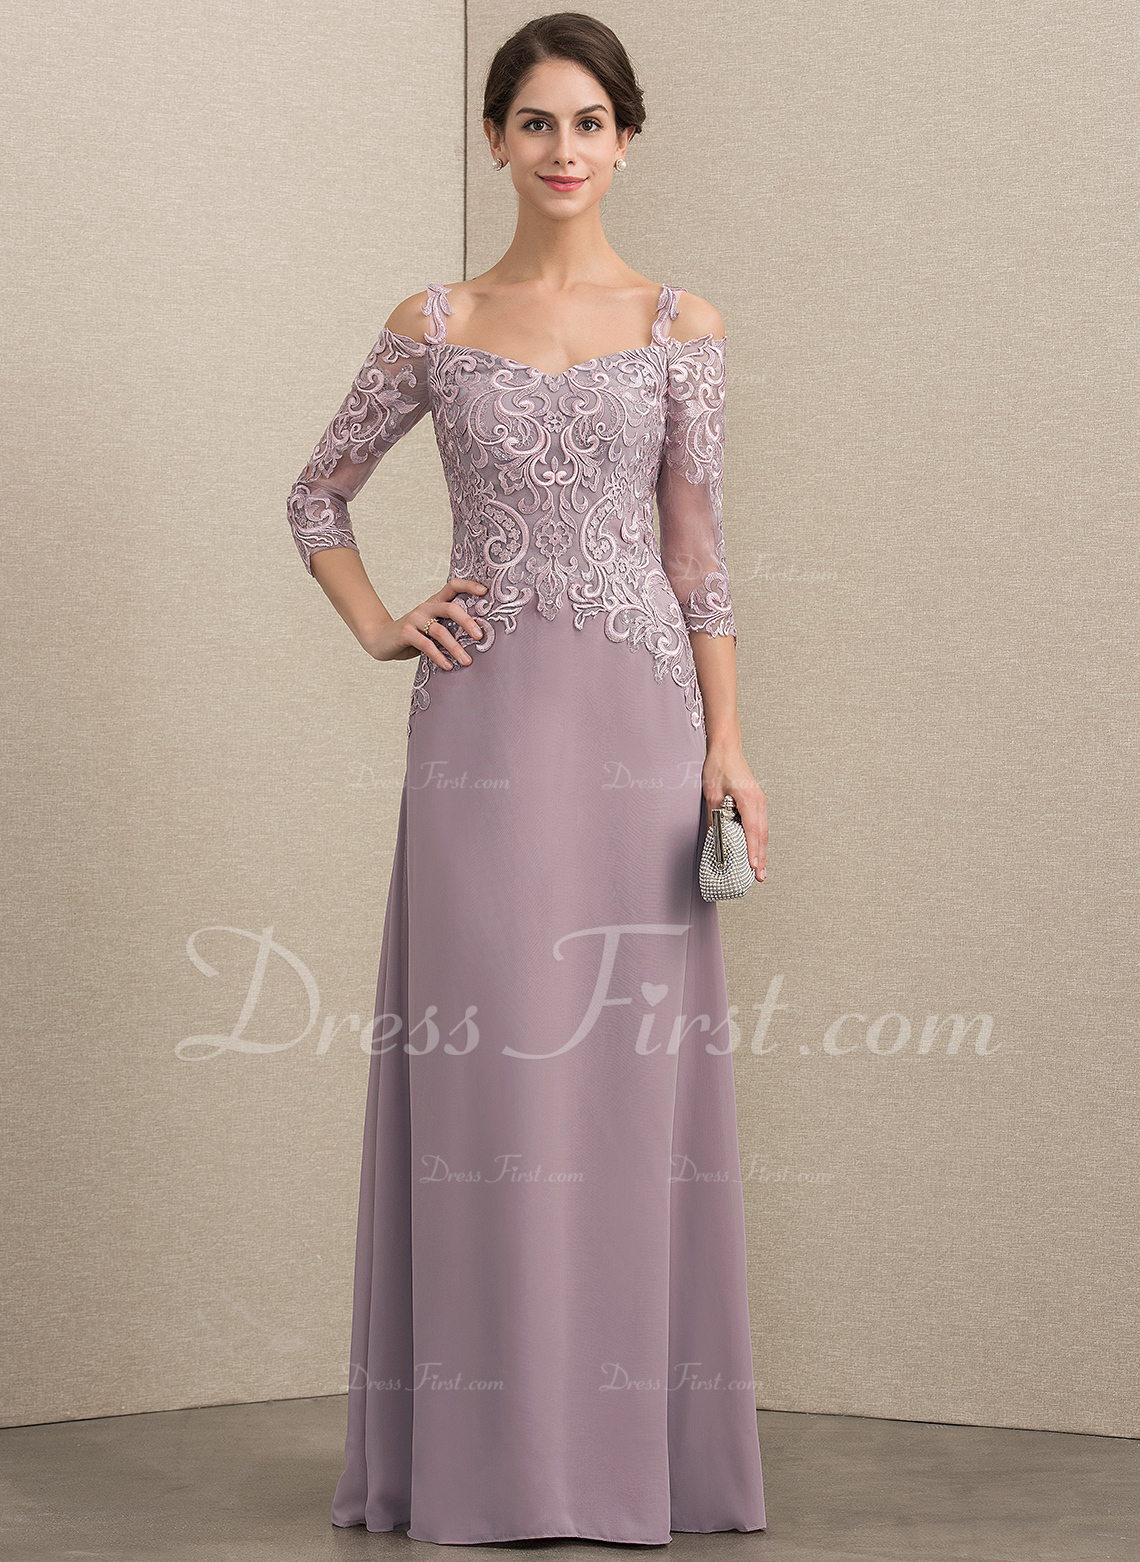 5aad98d265b6 A-Line/Princess Sweetheart Floor-Length Chiffon Lace Mother of the ...